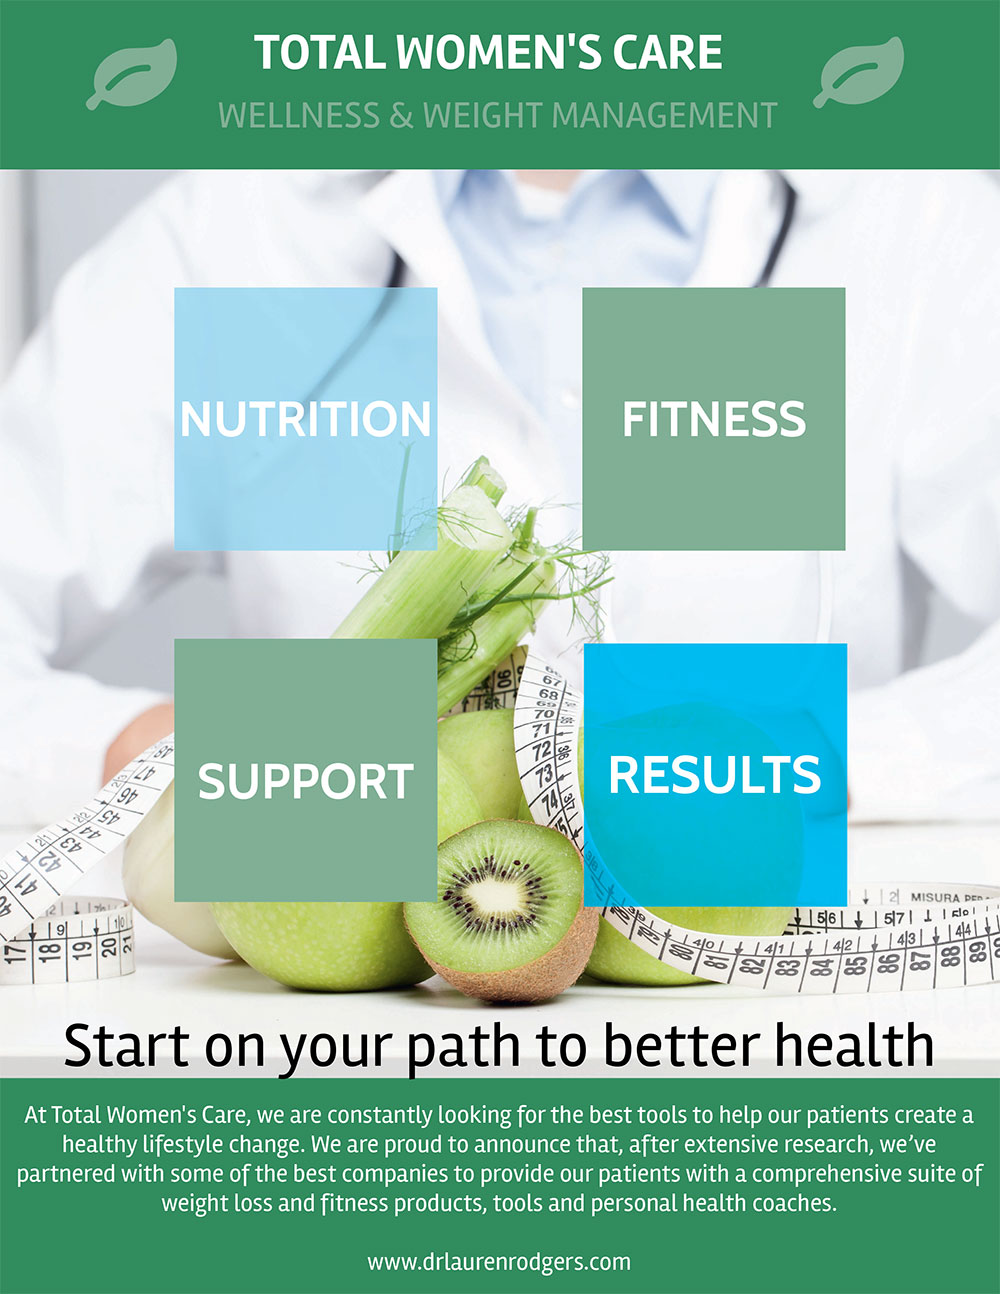 Wellness & Weight Management - Fitness, Nutrition & Support